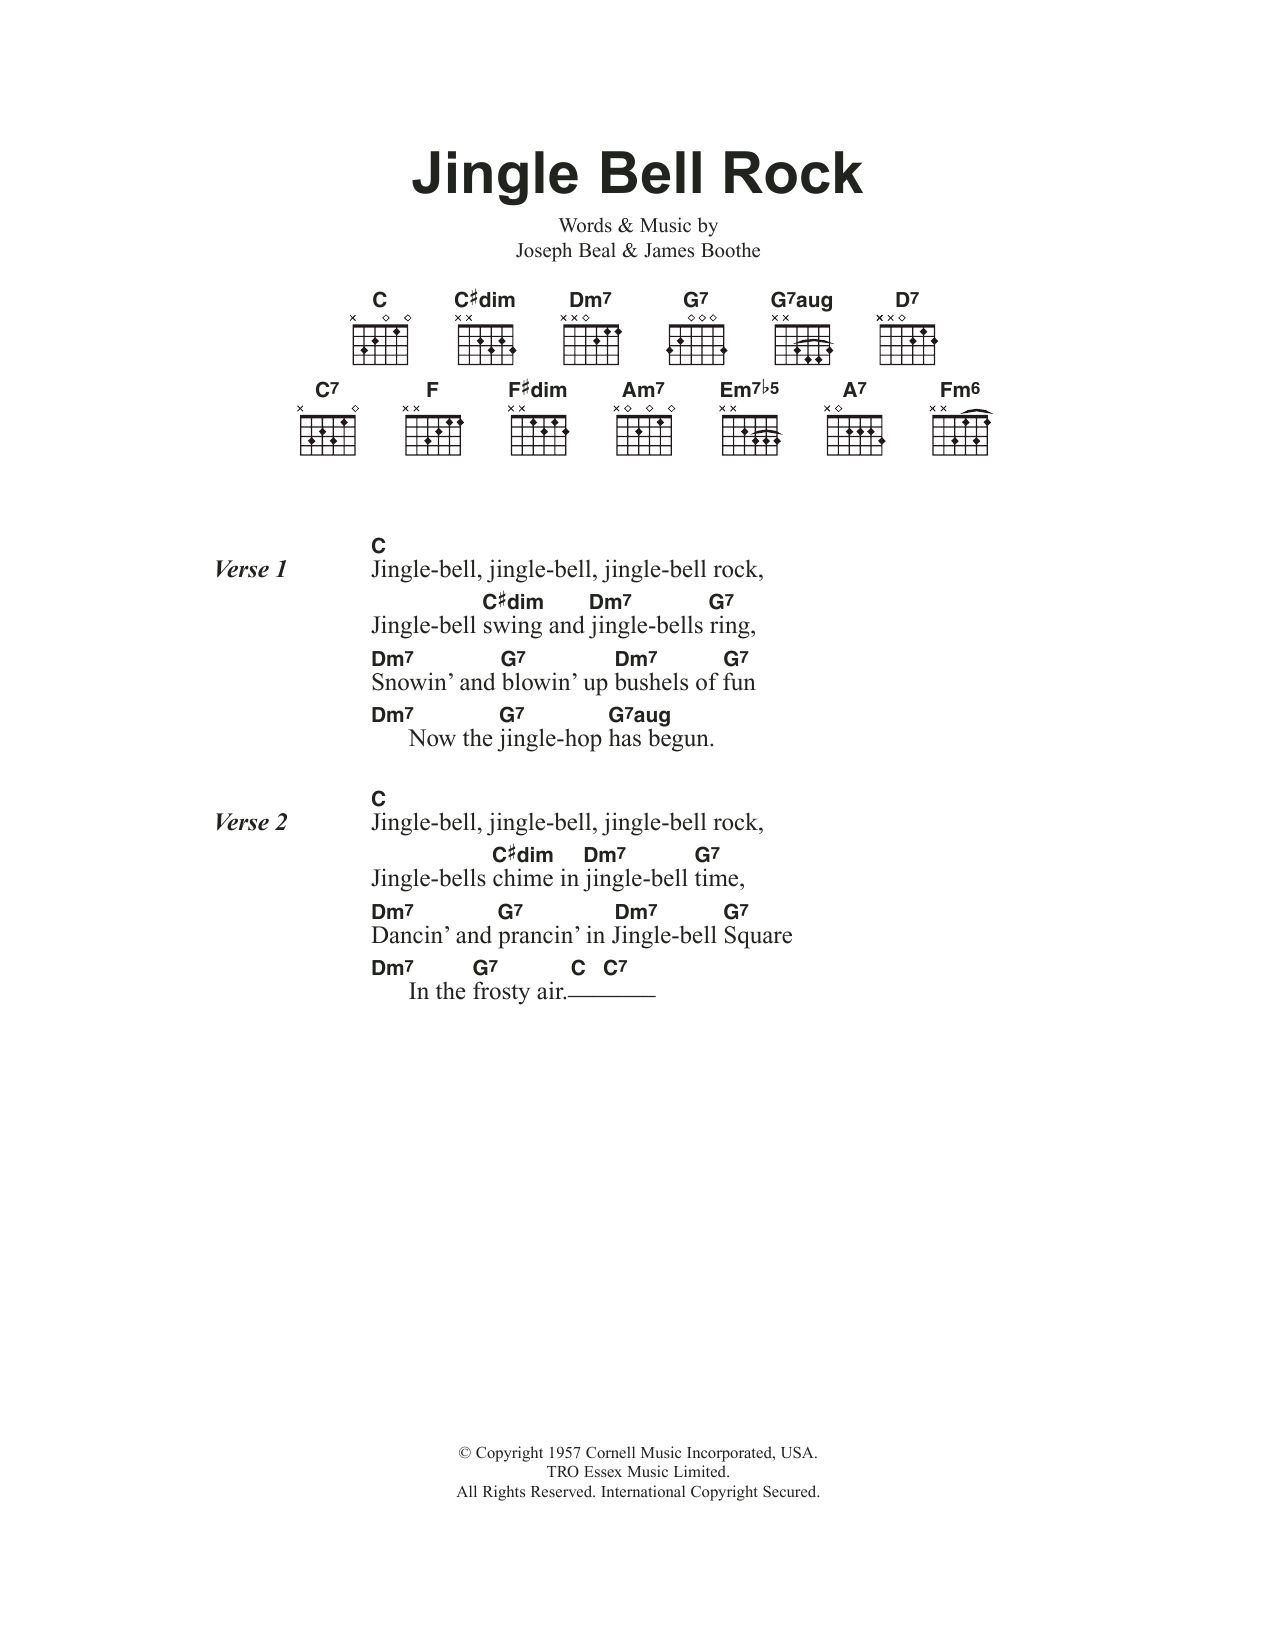 Jingle Bell Rock by Chubby Checker - Guitar Chords/Lyrics - Guitar Instructor